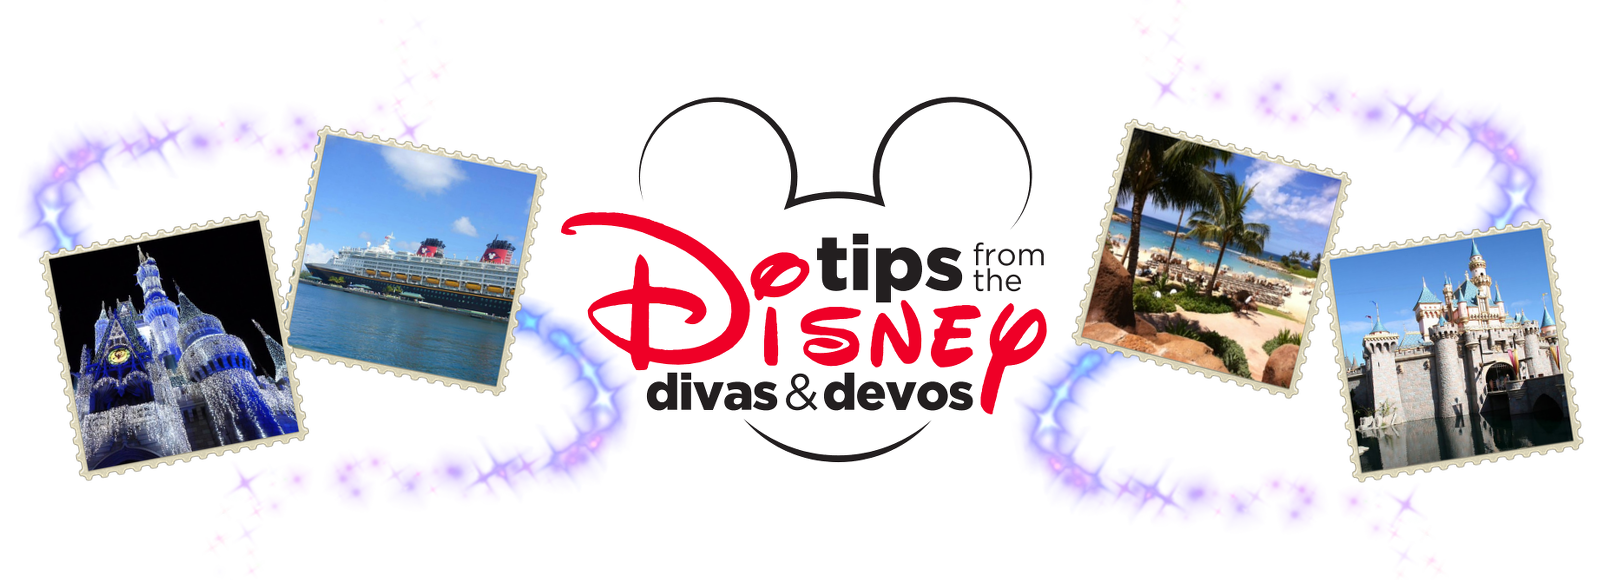 Awesome Disney Tips for your next Disney vacation or sharing your Disney Side at Home!